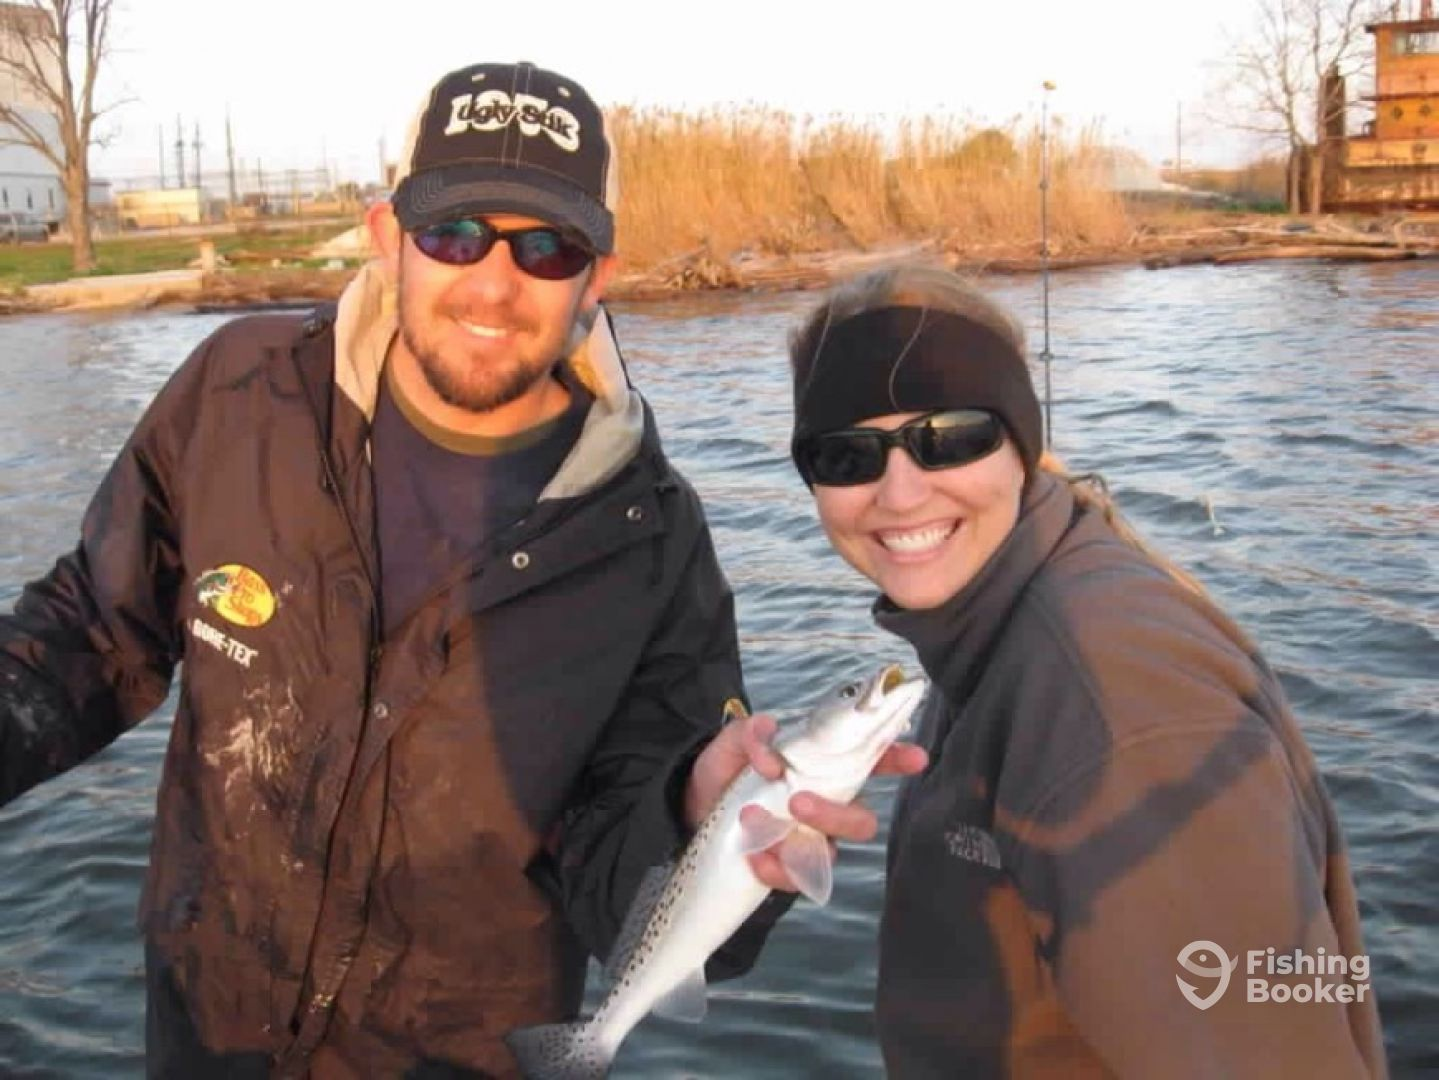 Catch and release speckled trout fishing